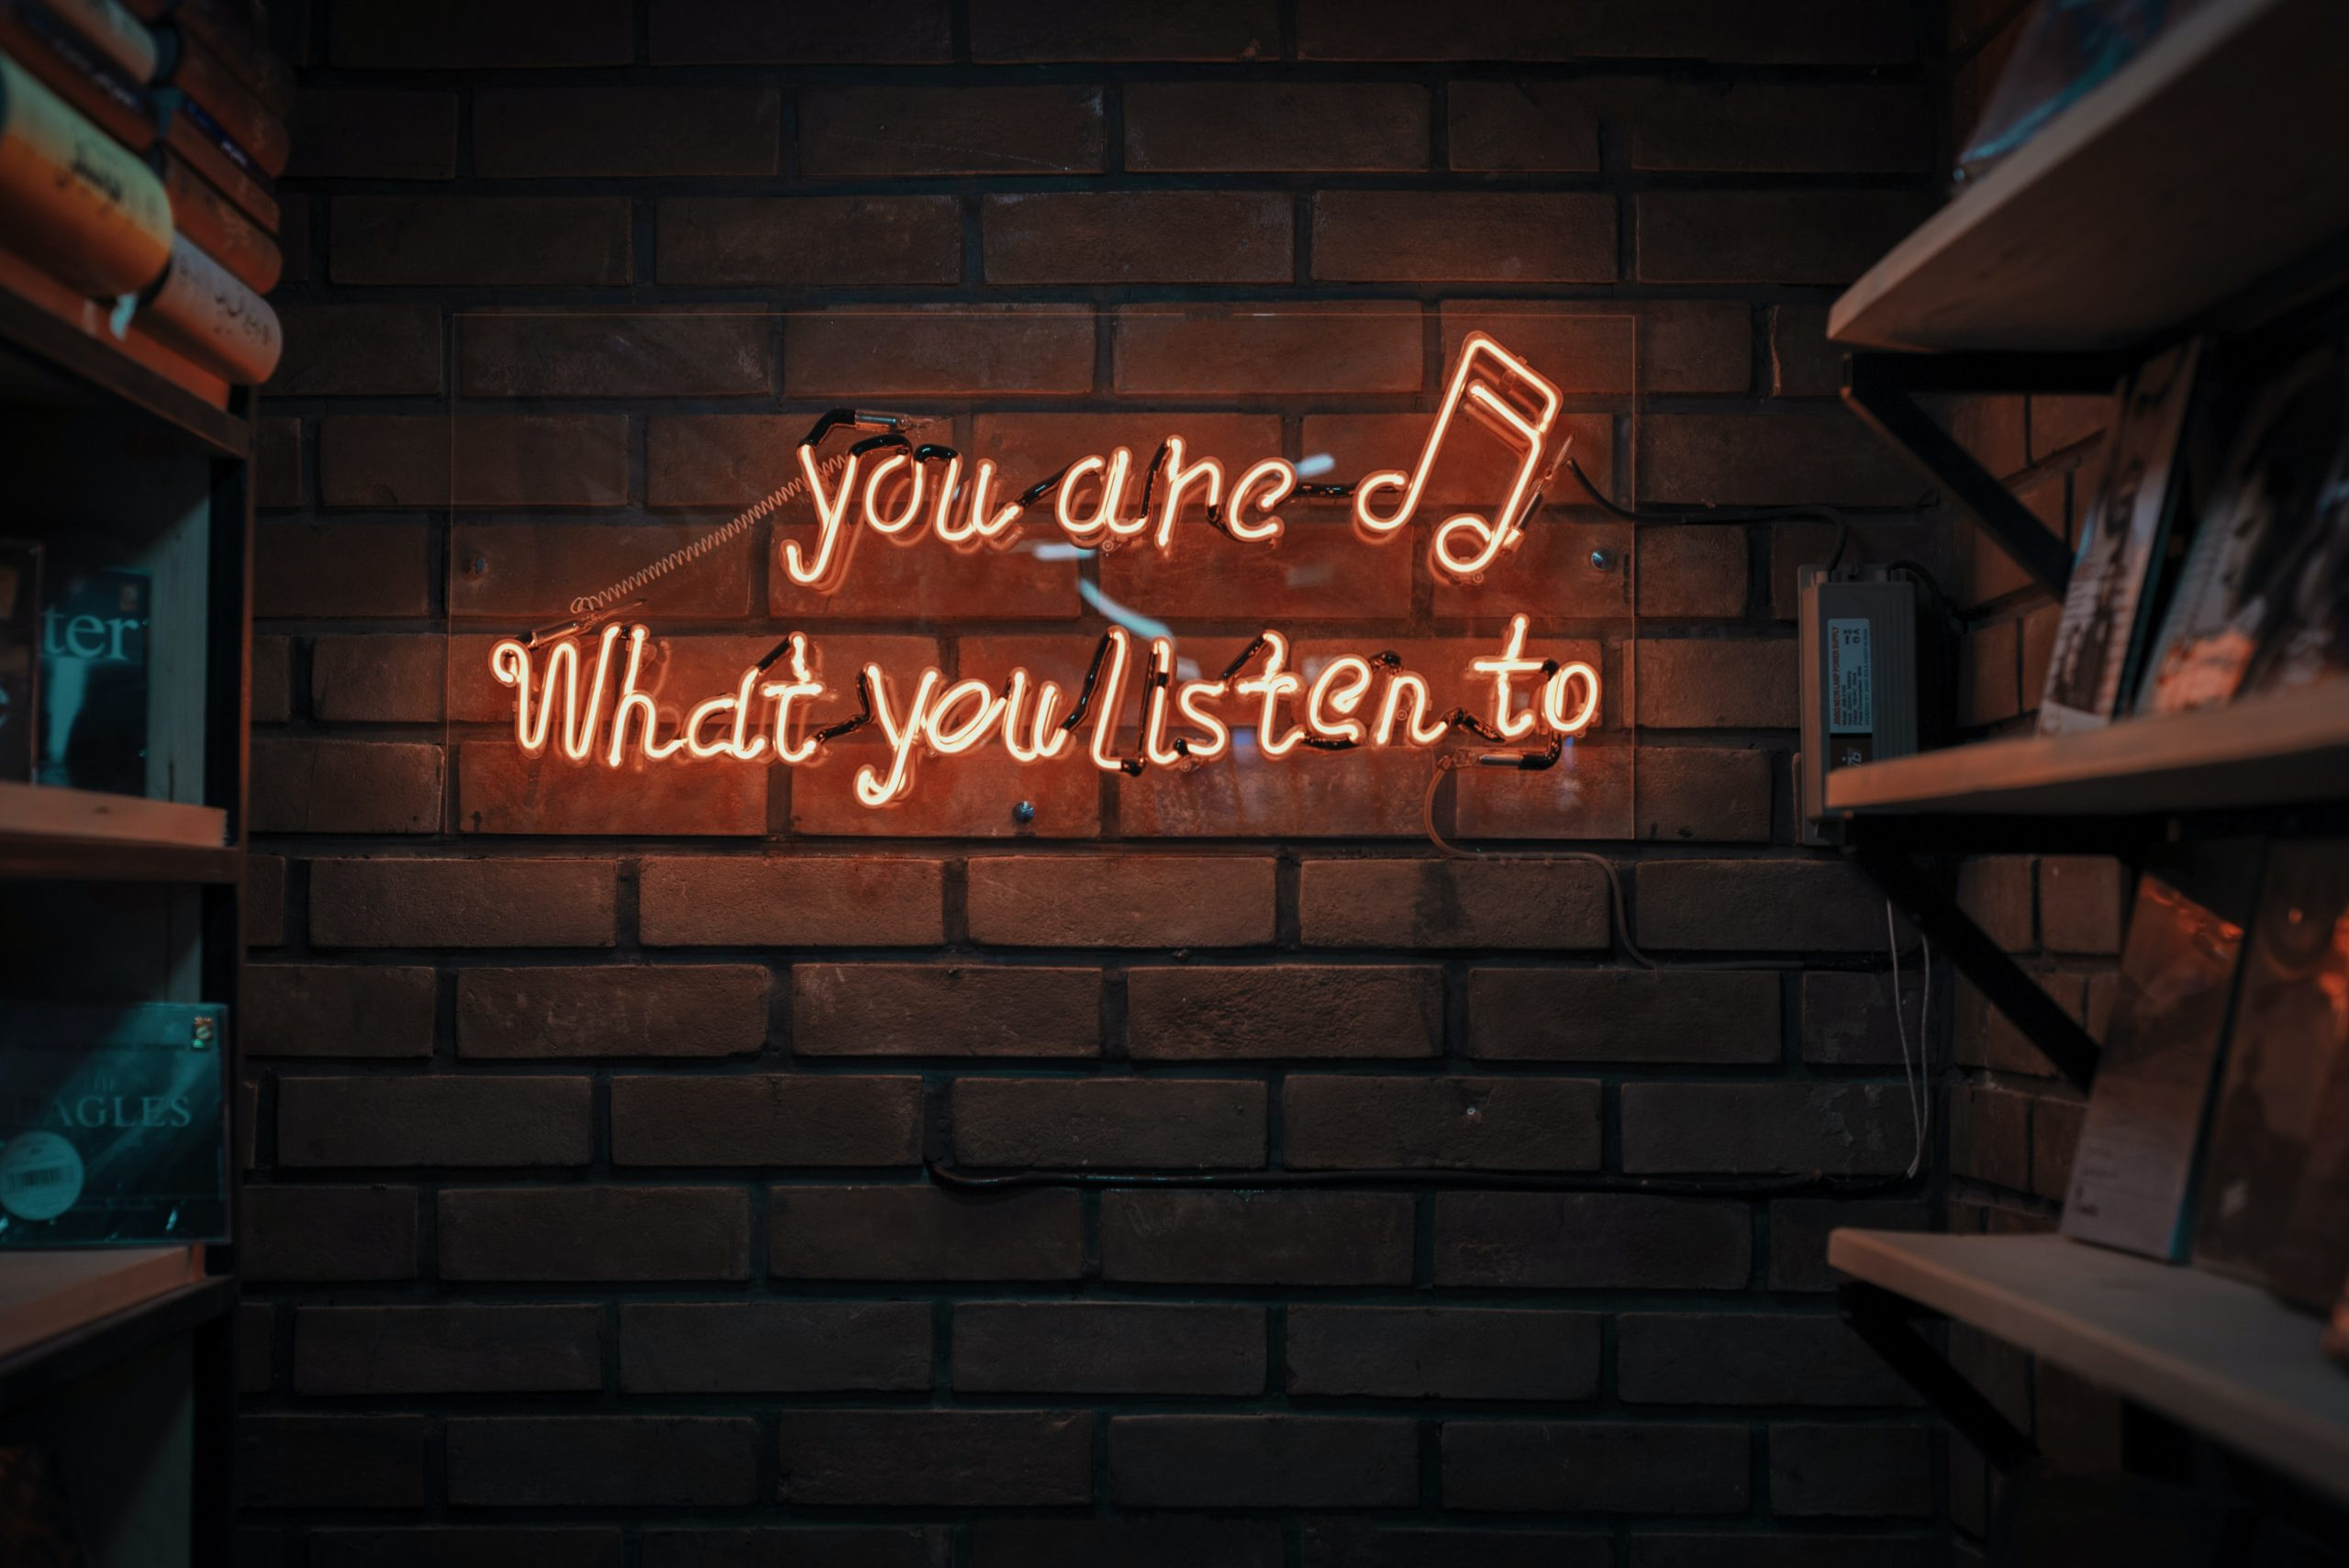 Turn Your Social Media into a Listening Channel